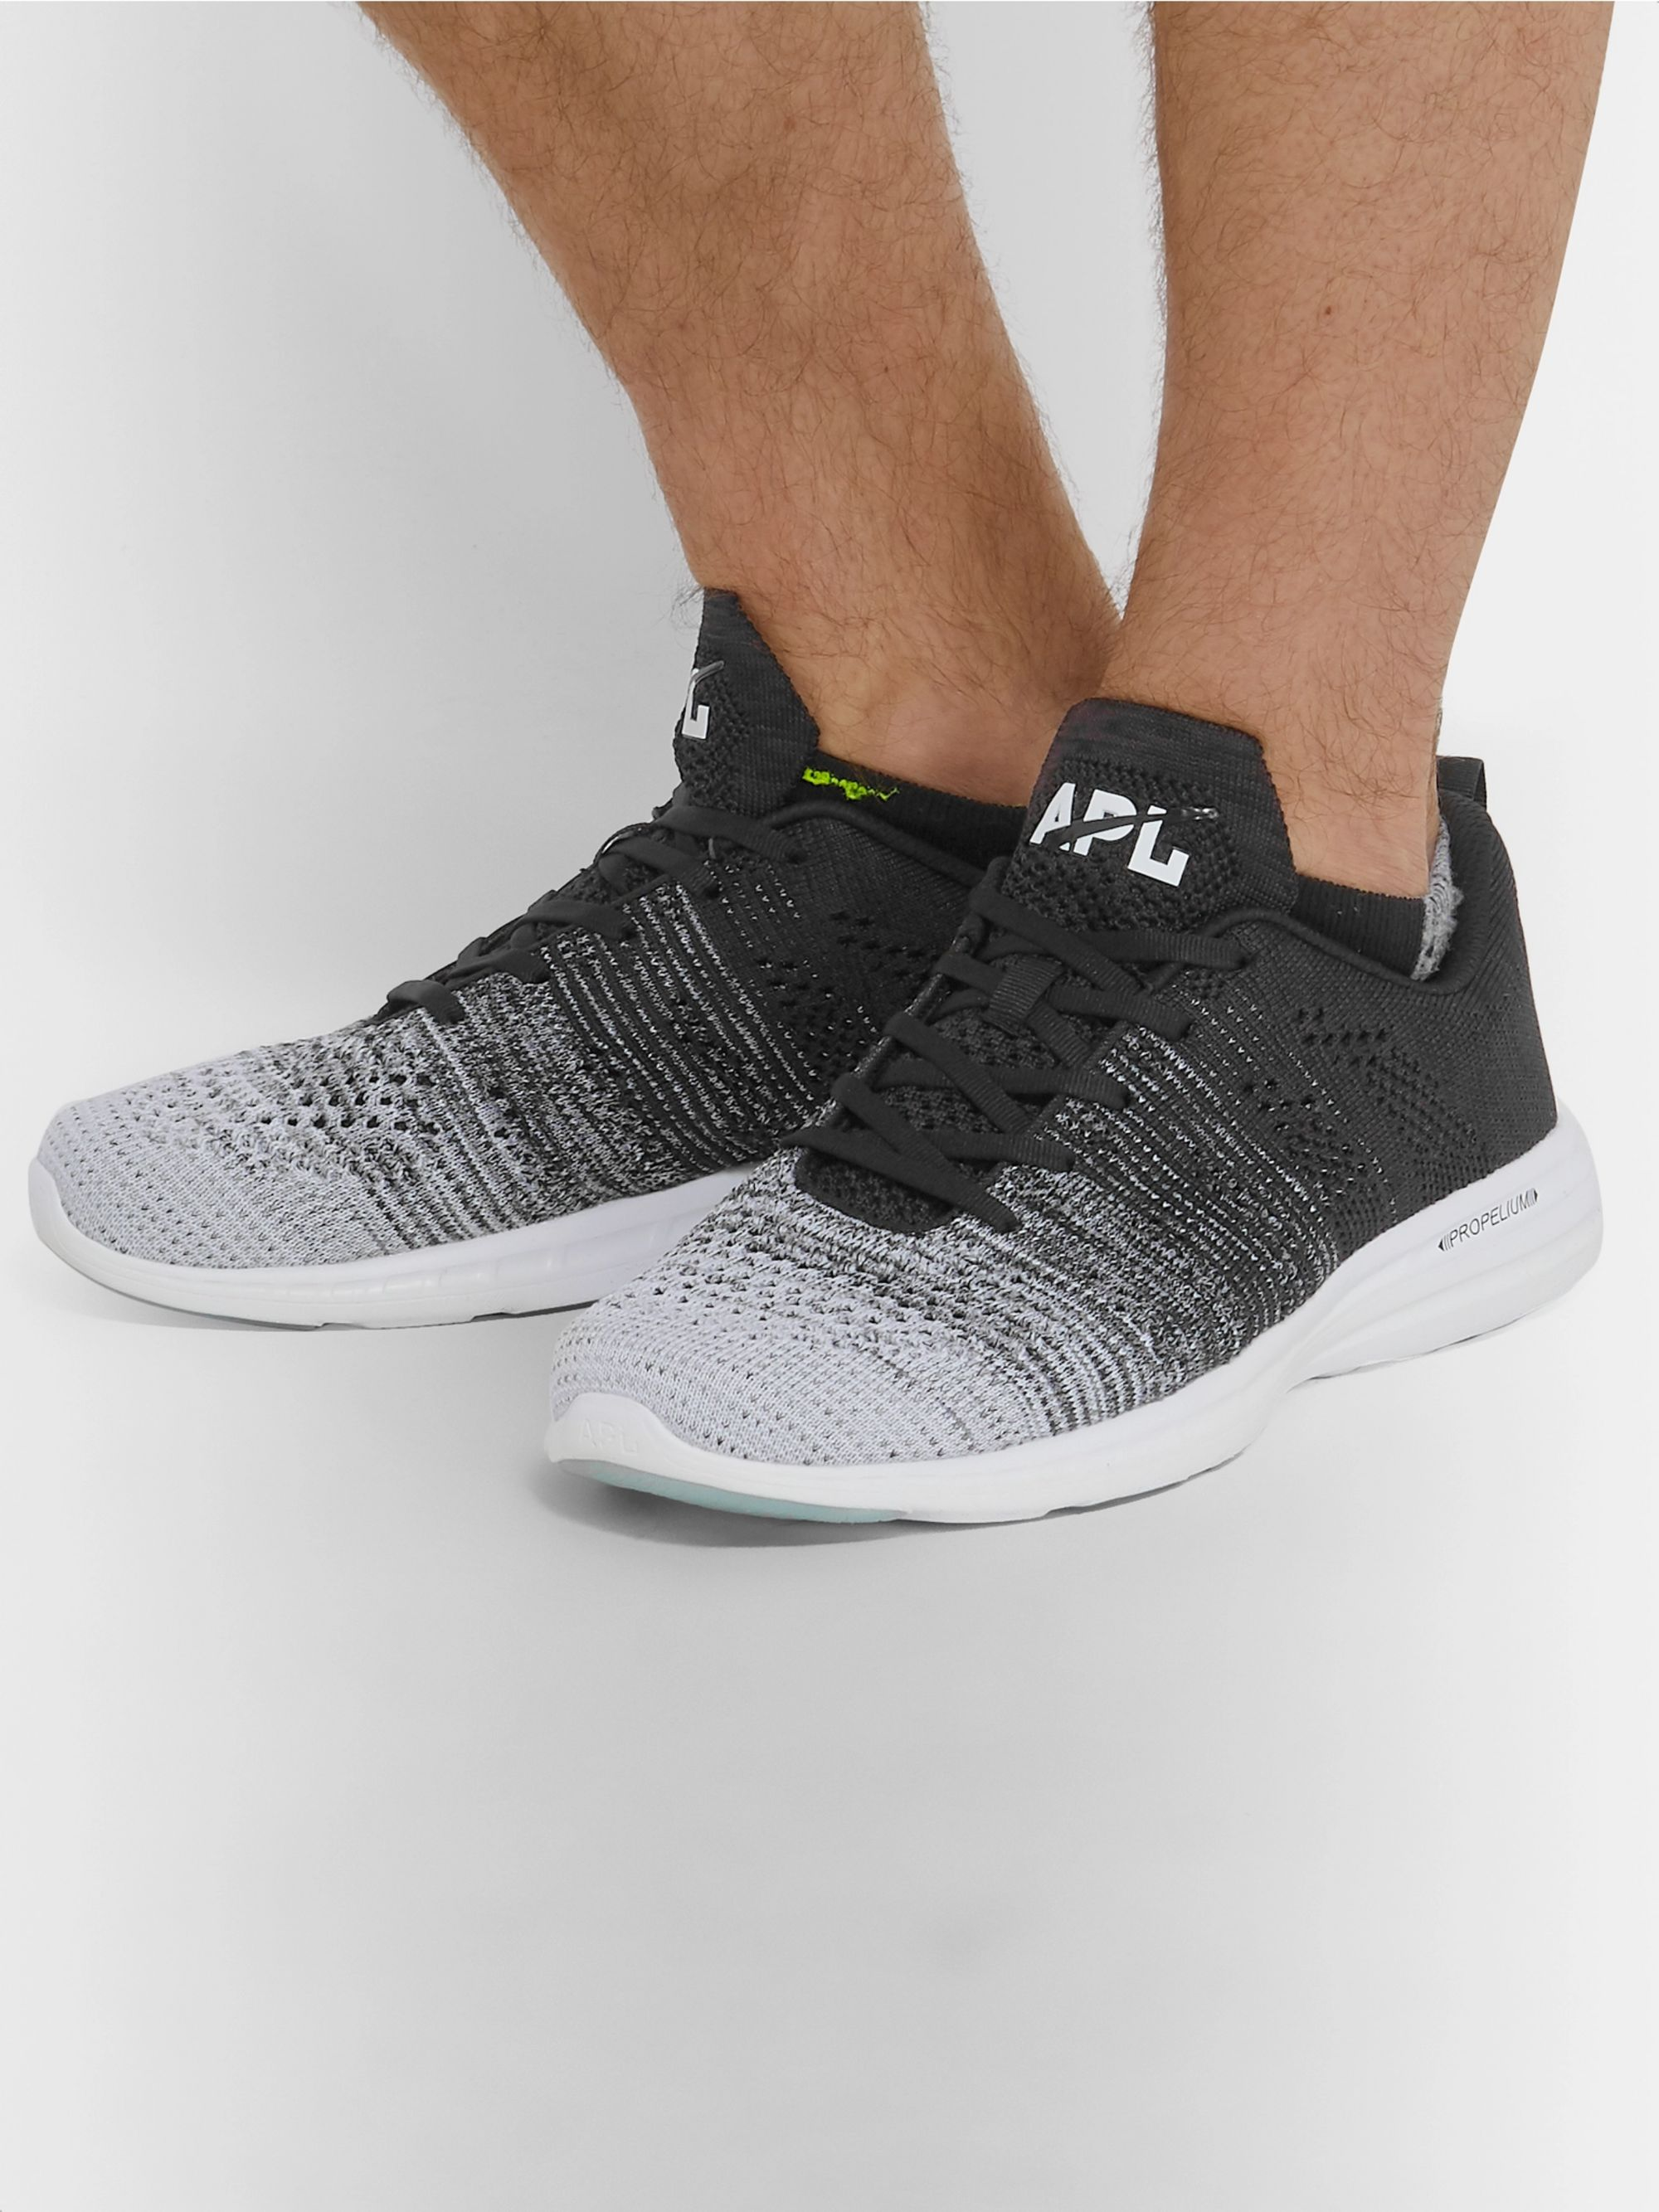 APL Athletic Propulsion Labs TechLoom Pro Running Sneakers